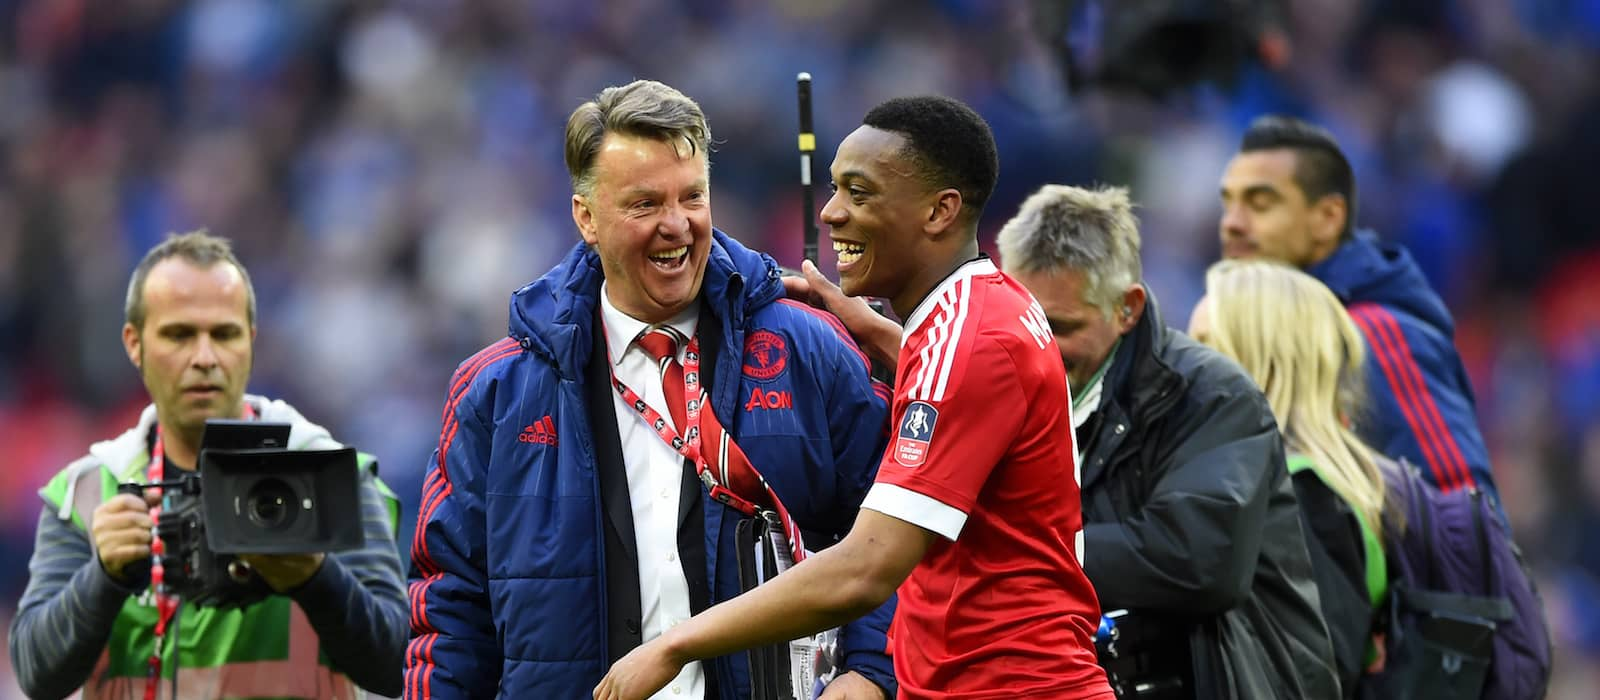 Video: Pitch side view of Man United's 2-1 win over Everton in FA Cup semi-final